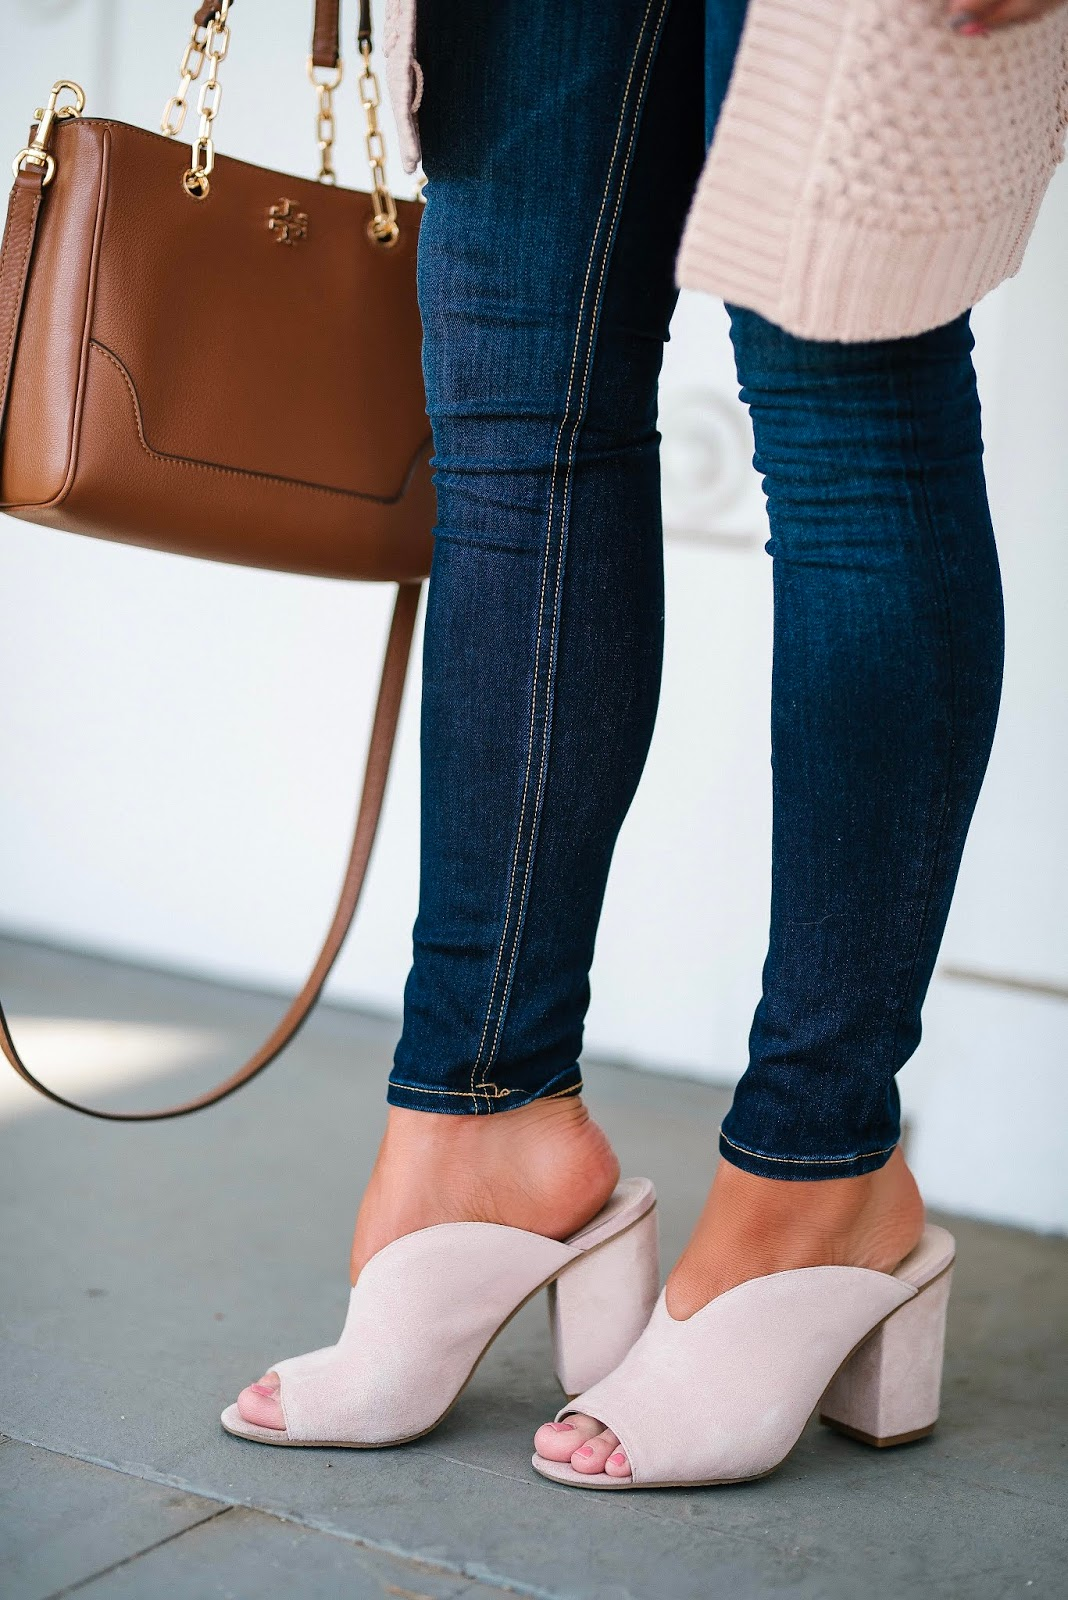 Under $80 Pink Mules - Something Delightful Blog